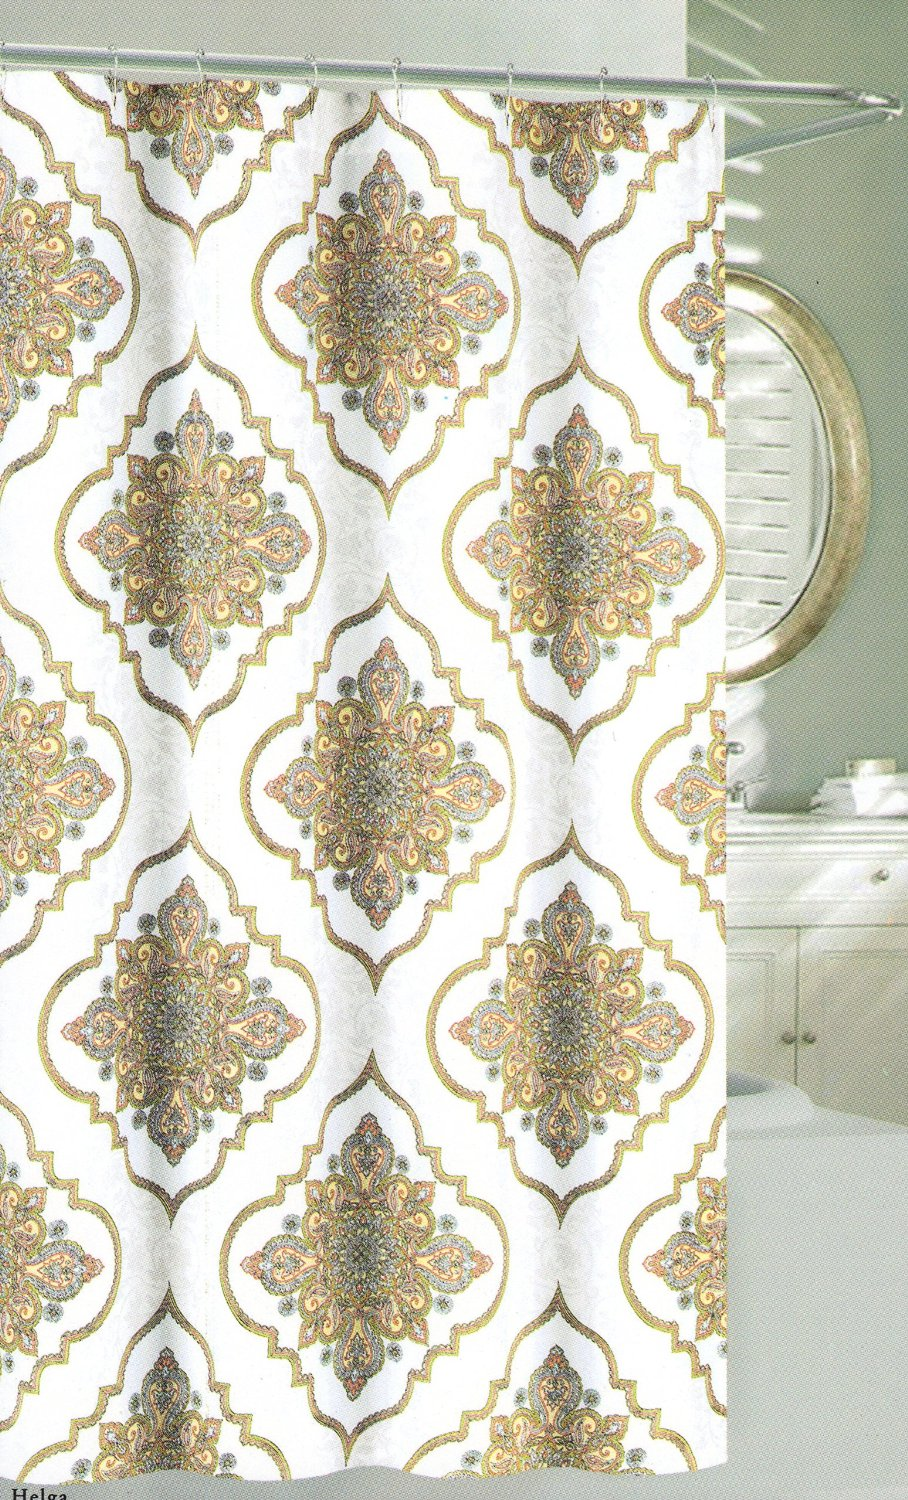 Get Quotations Nicole Miller Large Ornate Medallion Fabric Shower Curtain 72 Inch By